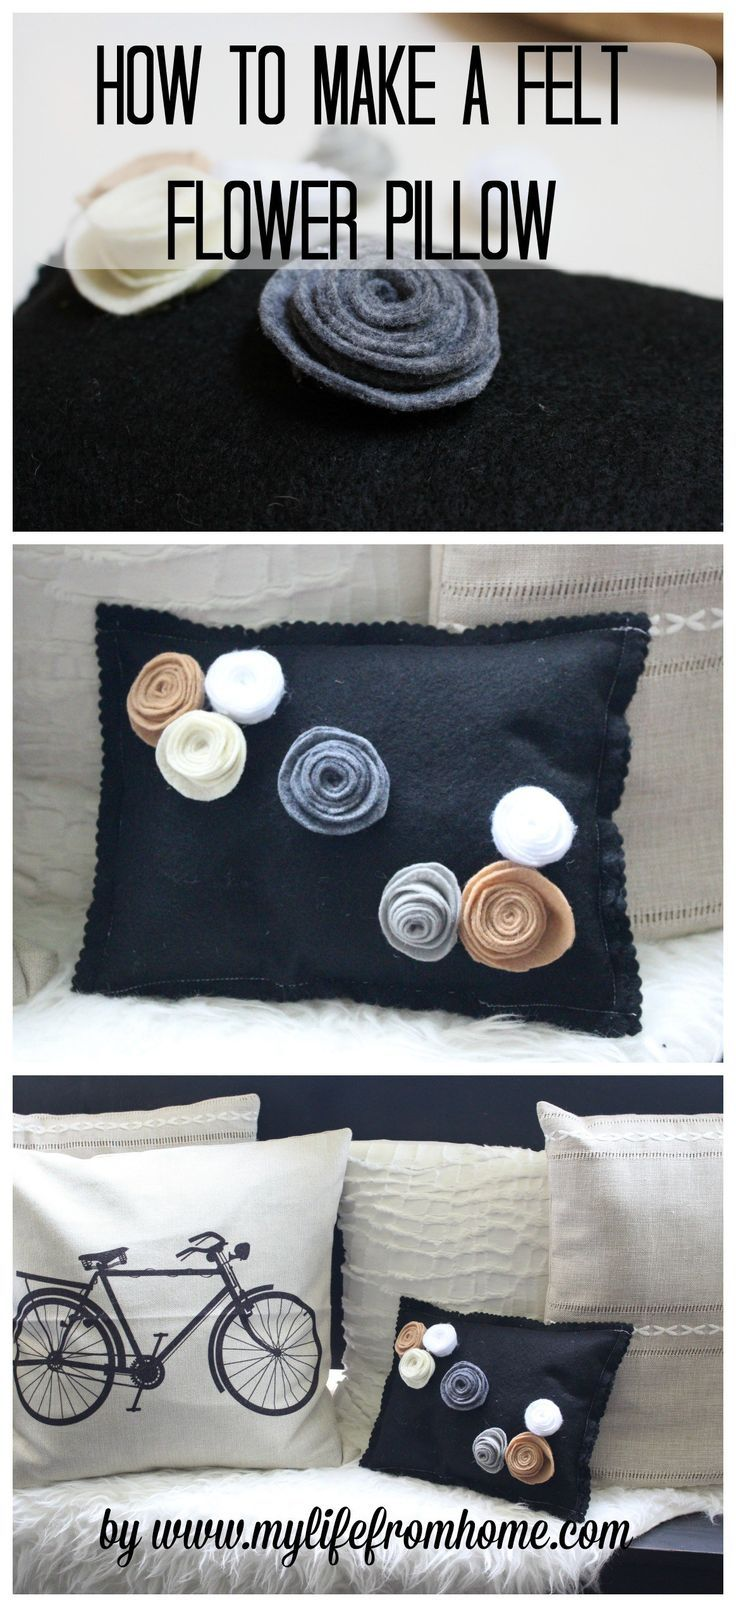 How to Make a Felt Flower Pillow by http://www.mylifefromhome.com